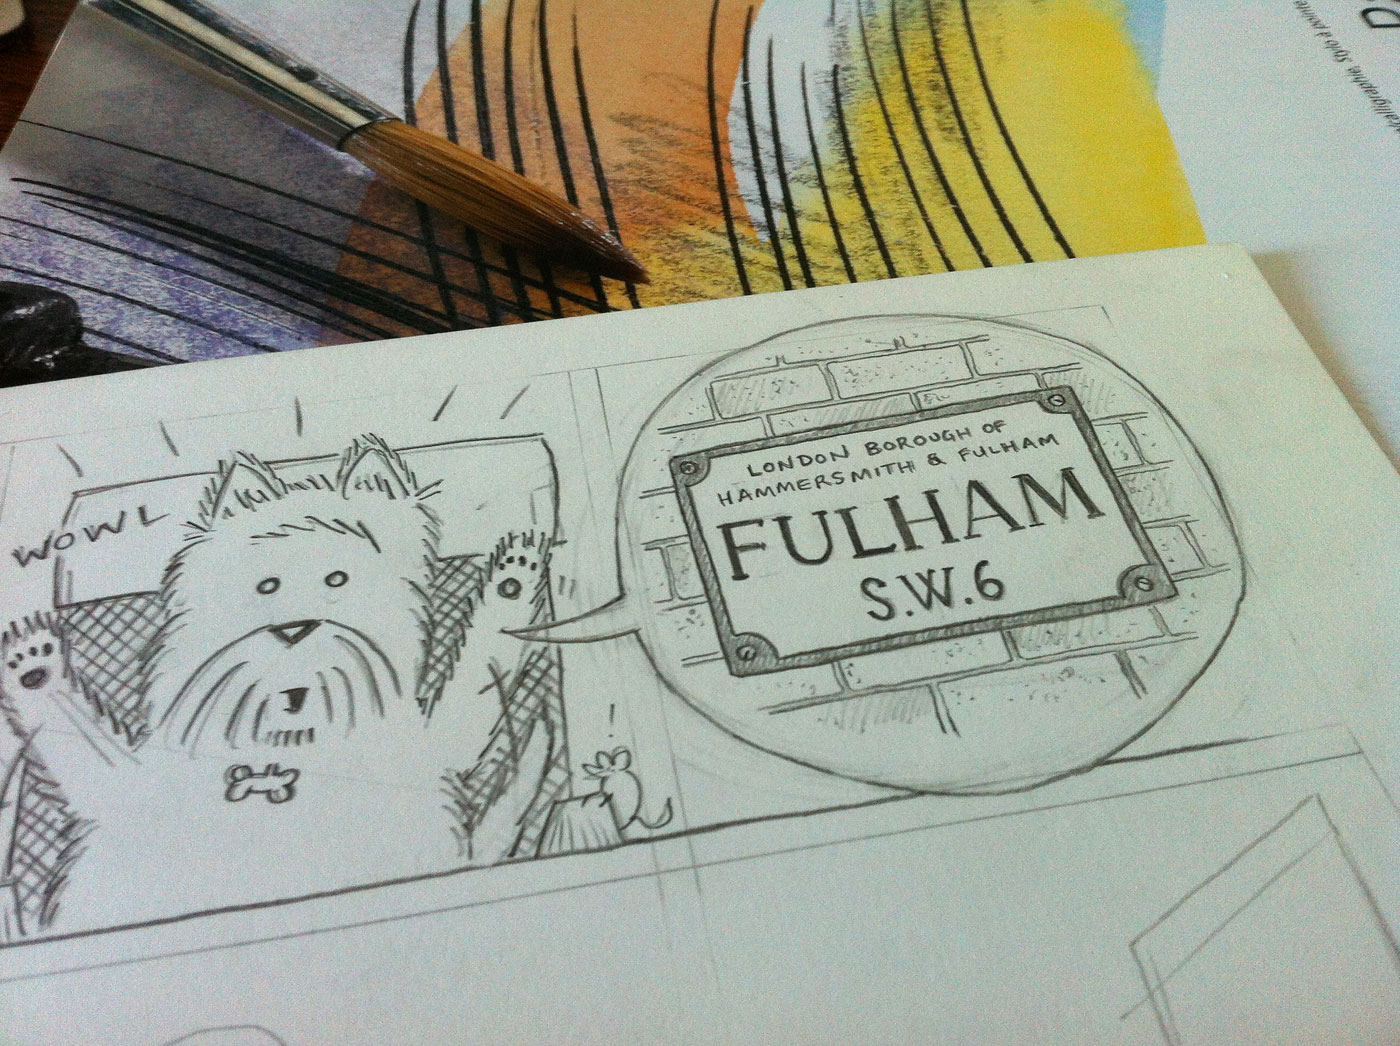 Casper decides to go to Fulham.